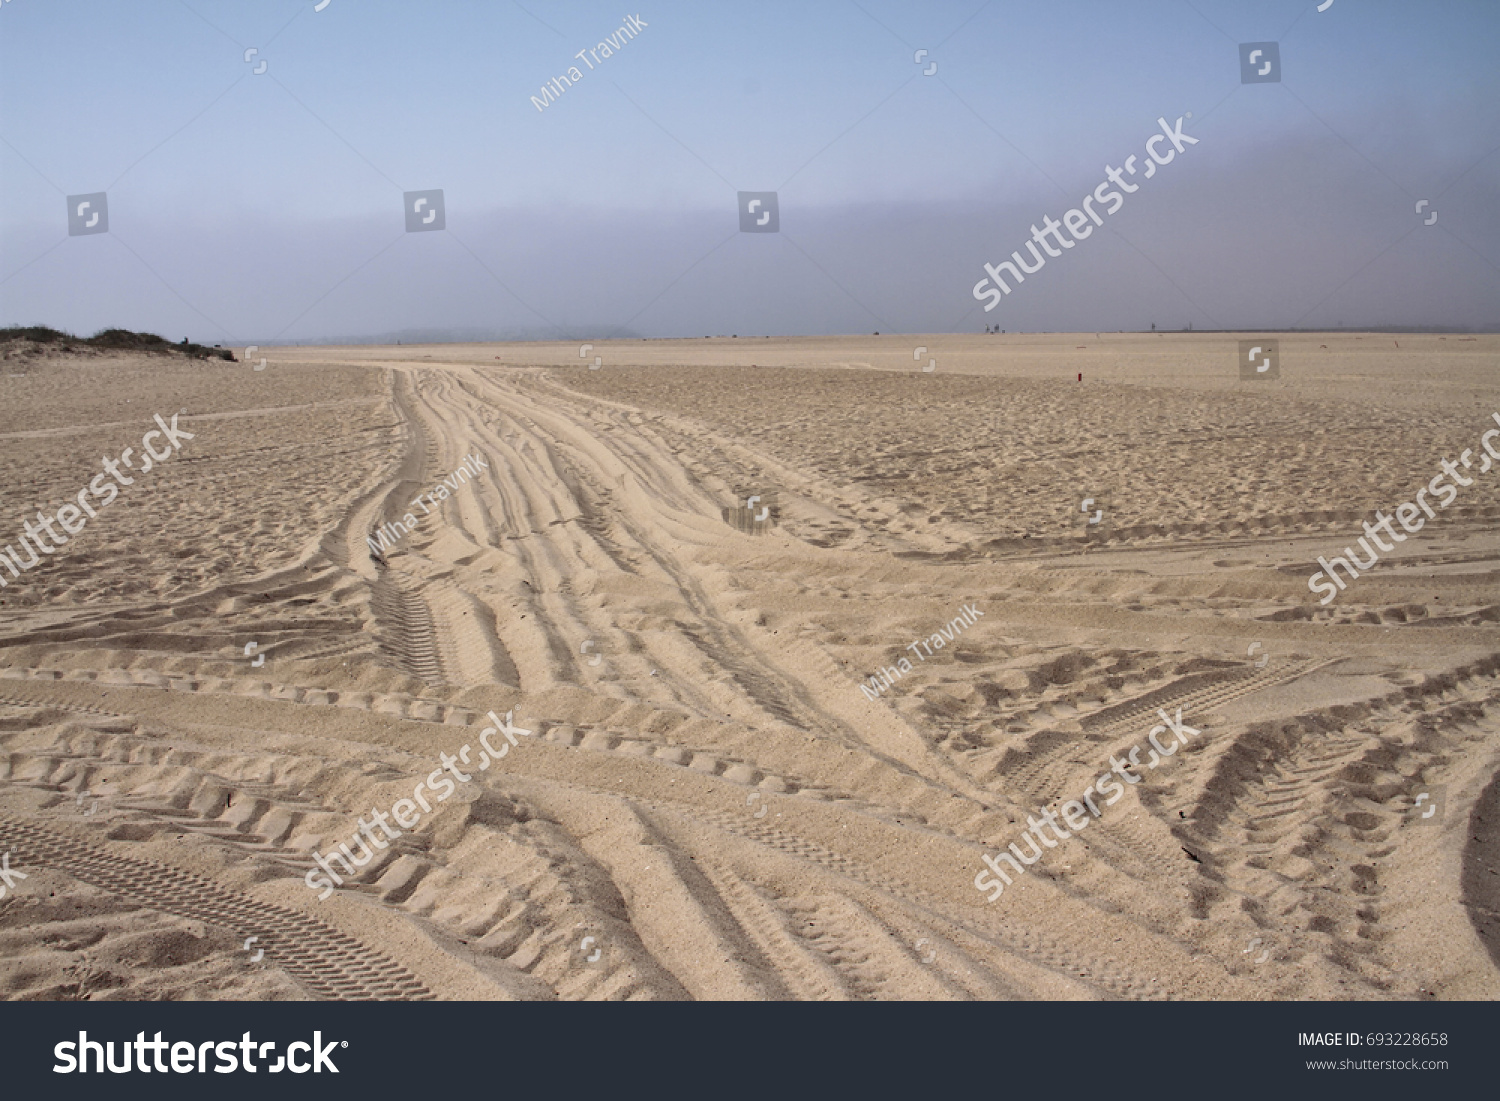 stock-photo-tire-marks-and-tracks-on-a-s